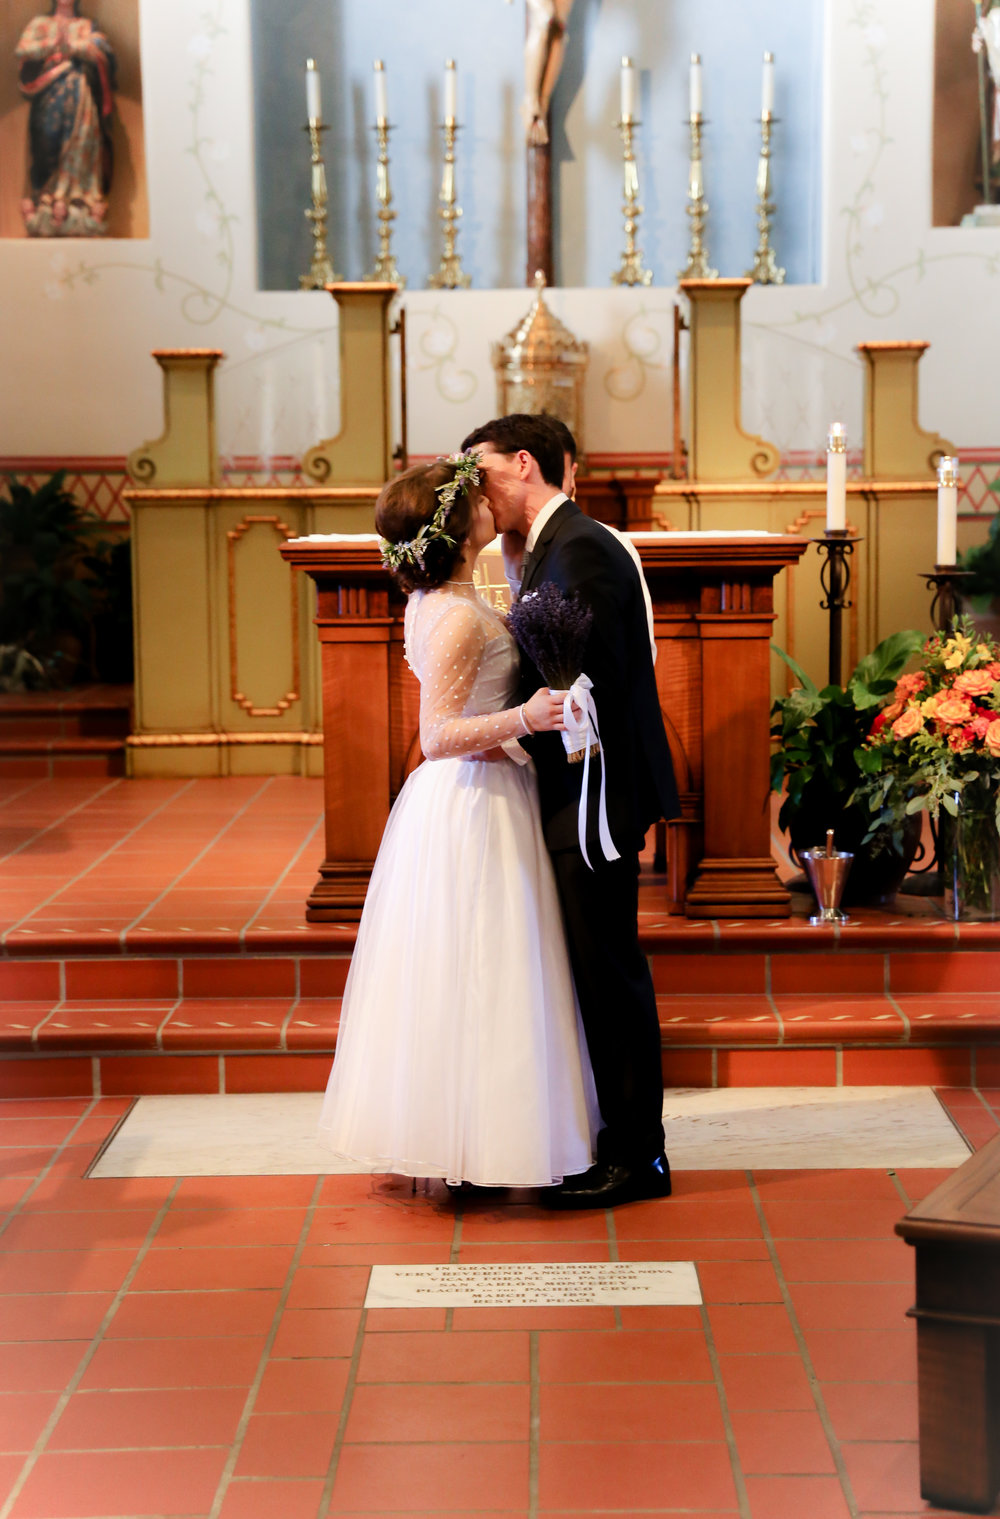 alexandra-rice-photography-monterey-wedding-bride-groom-kiss-san-carlos-cathedral.jpg